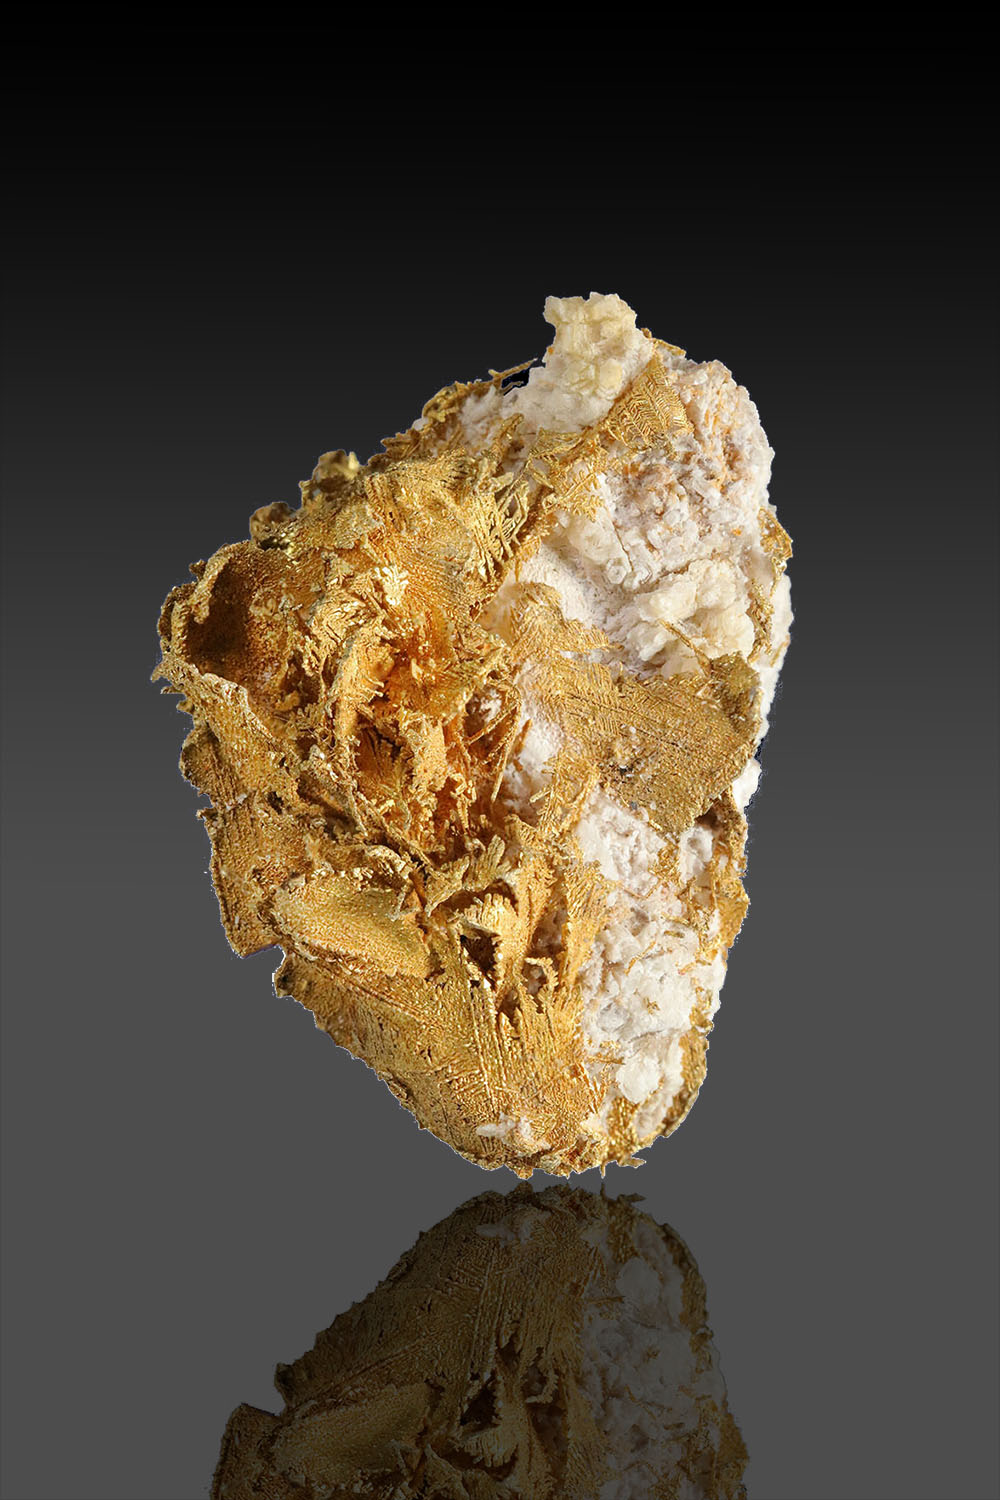 Dendritic Gold Crystals on Quartz - Round Mountain, Nevada